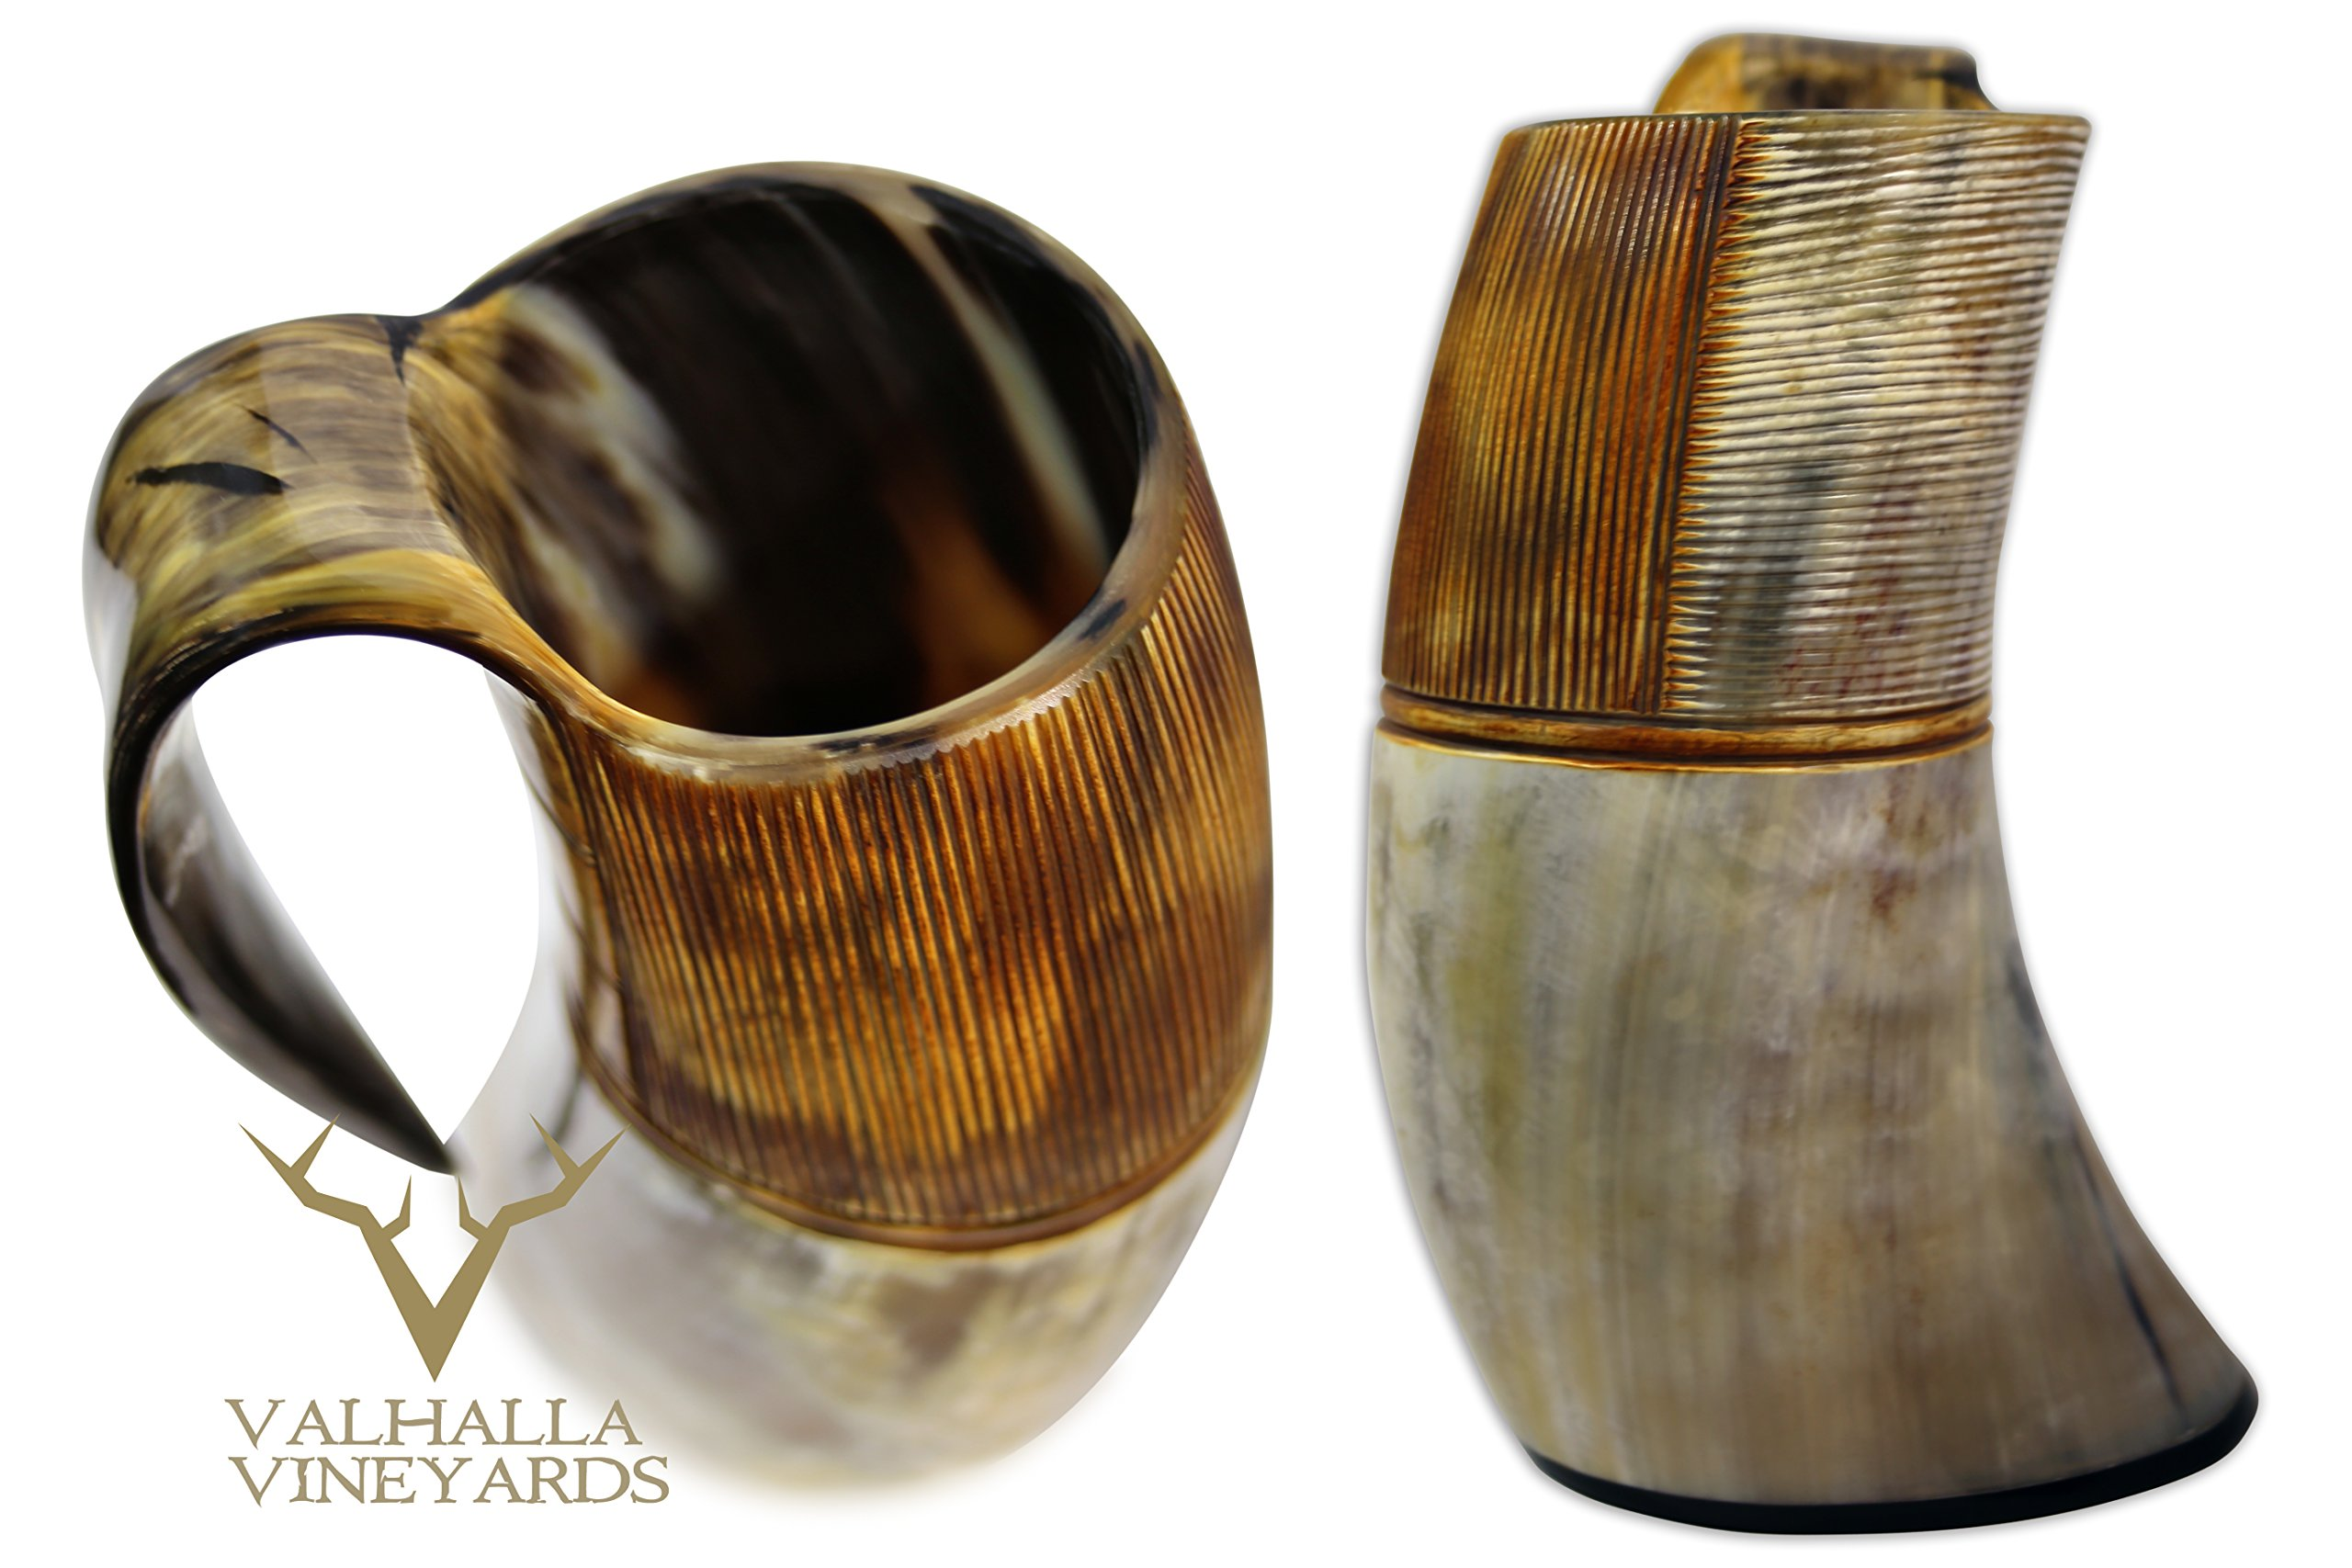 XXL King Size Authentic Natural Style Viking Buffalo Drinking Pitcher / Mug - Authentic Medieval Inspired Mug/Pitcher (42 oz) (Lighter Color) by Valhalla Drinkware (Image #10)